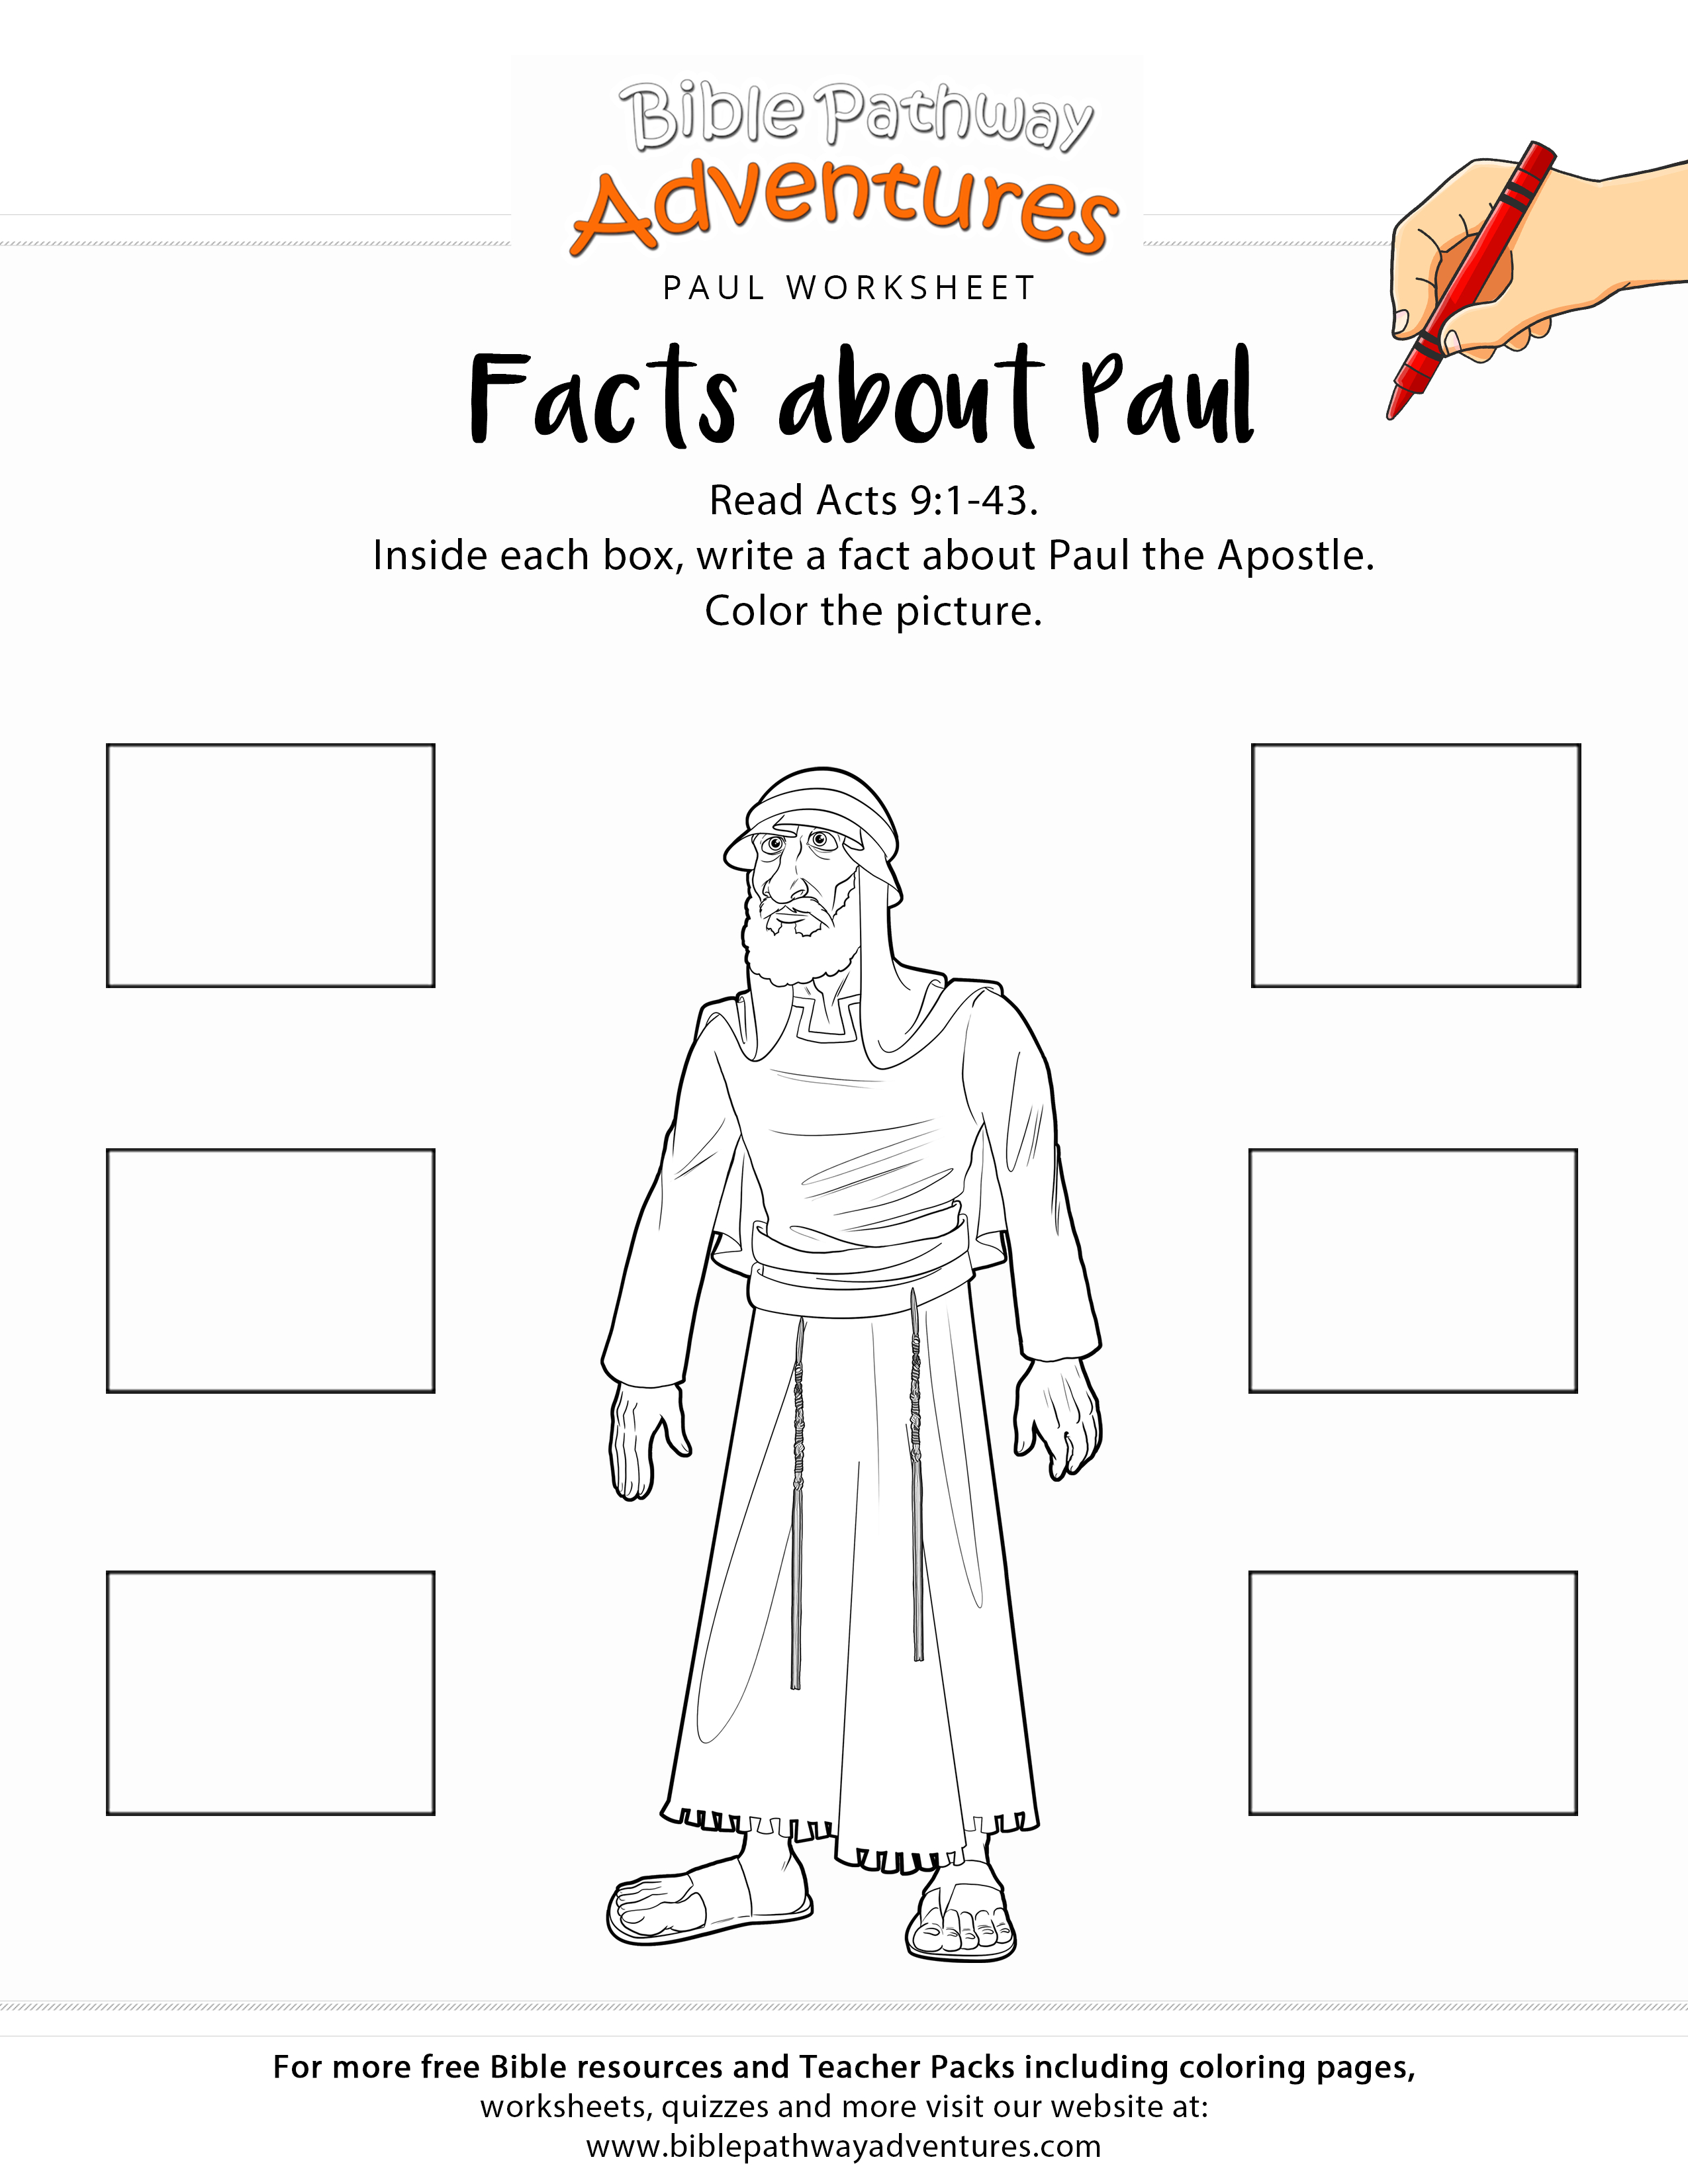 Facts About Paul Printable Bible Worksheet | Adventure Zone | Bible - Printable Bible Crossword Puzzle The Apostle Paul Answers